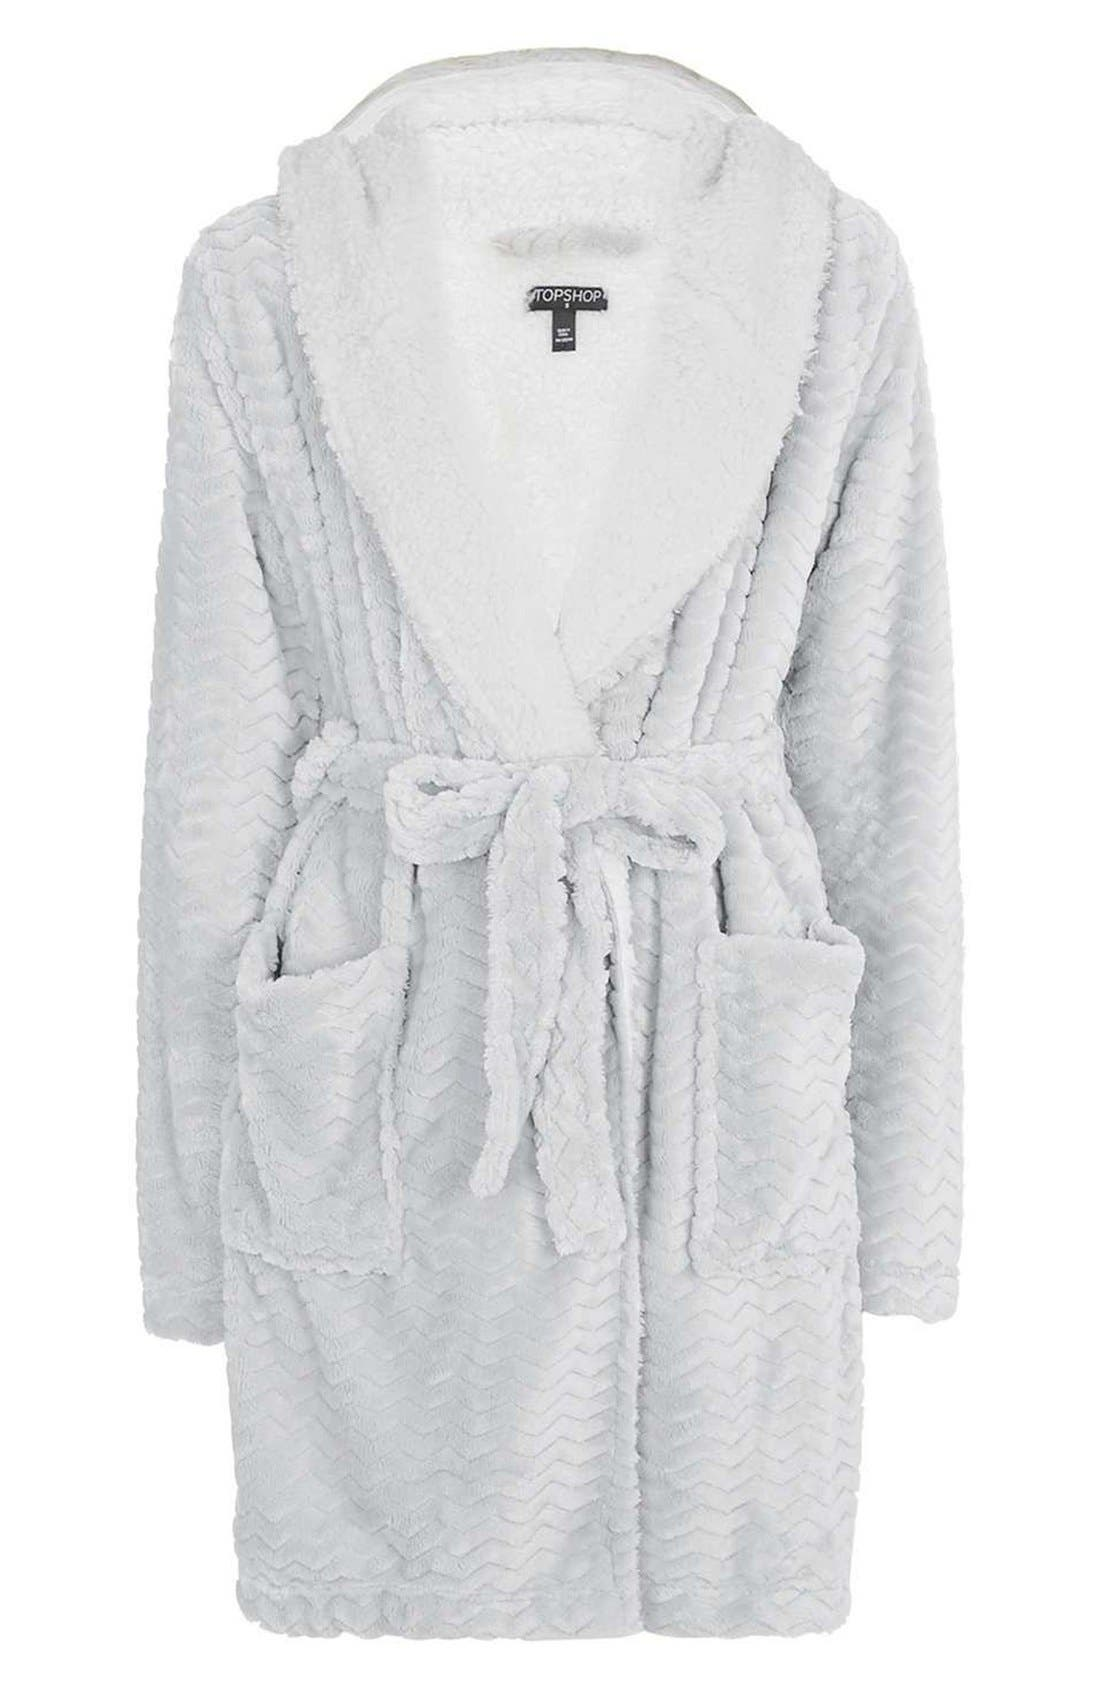 TOPSHOP,                             Teddy Hooded Chevron Robe,                             Alternate thumbnail 2, color,                             020